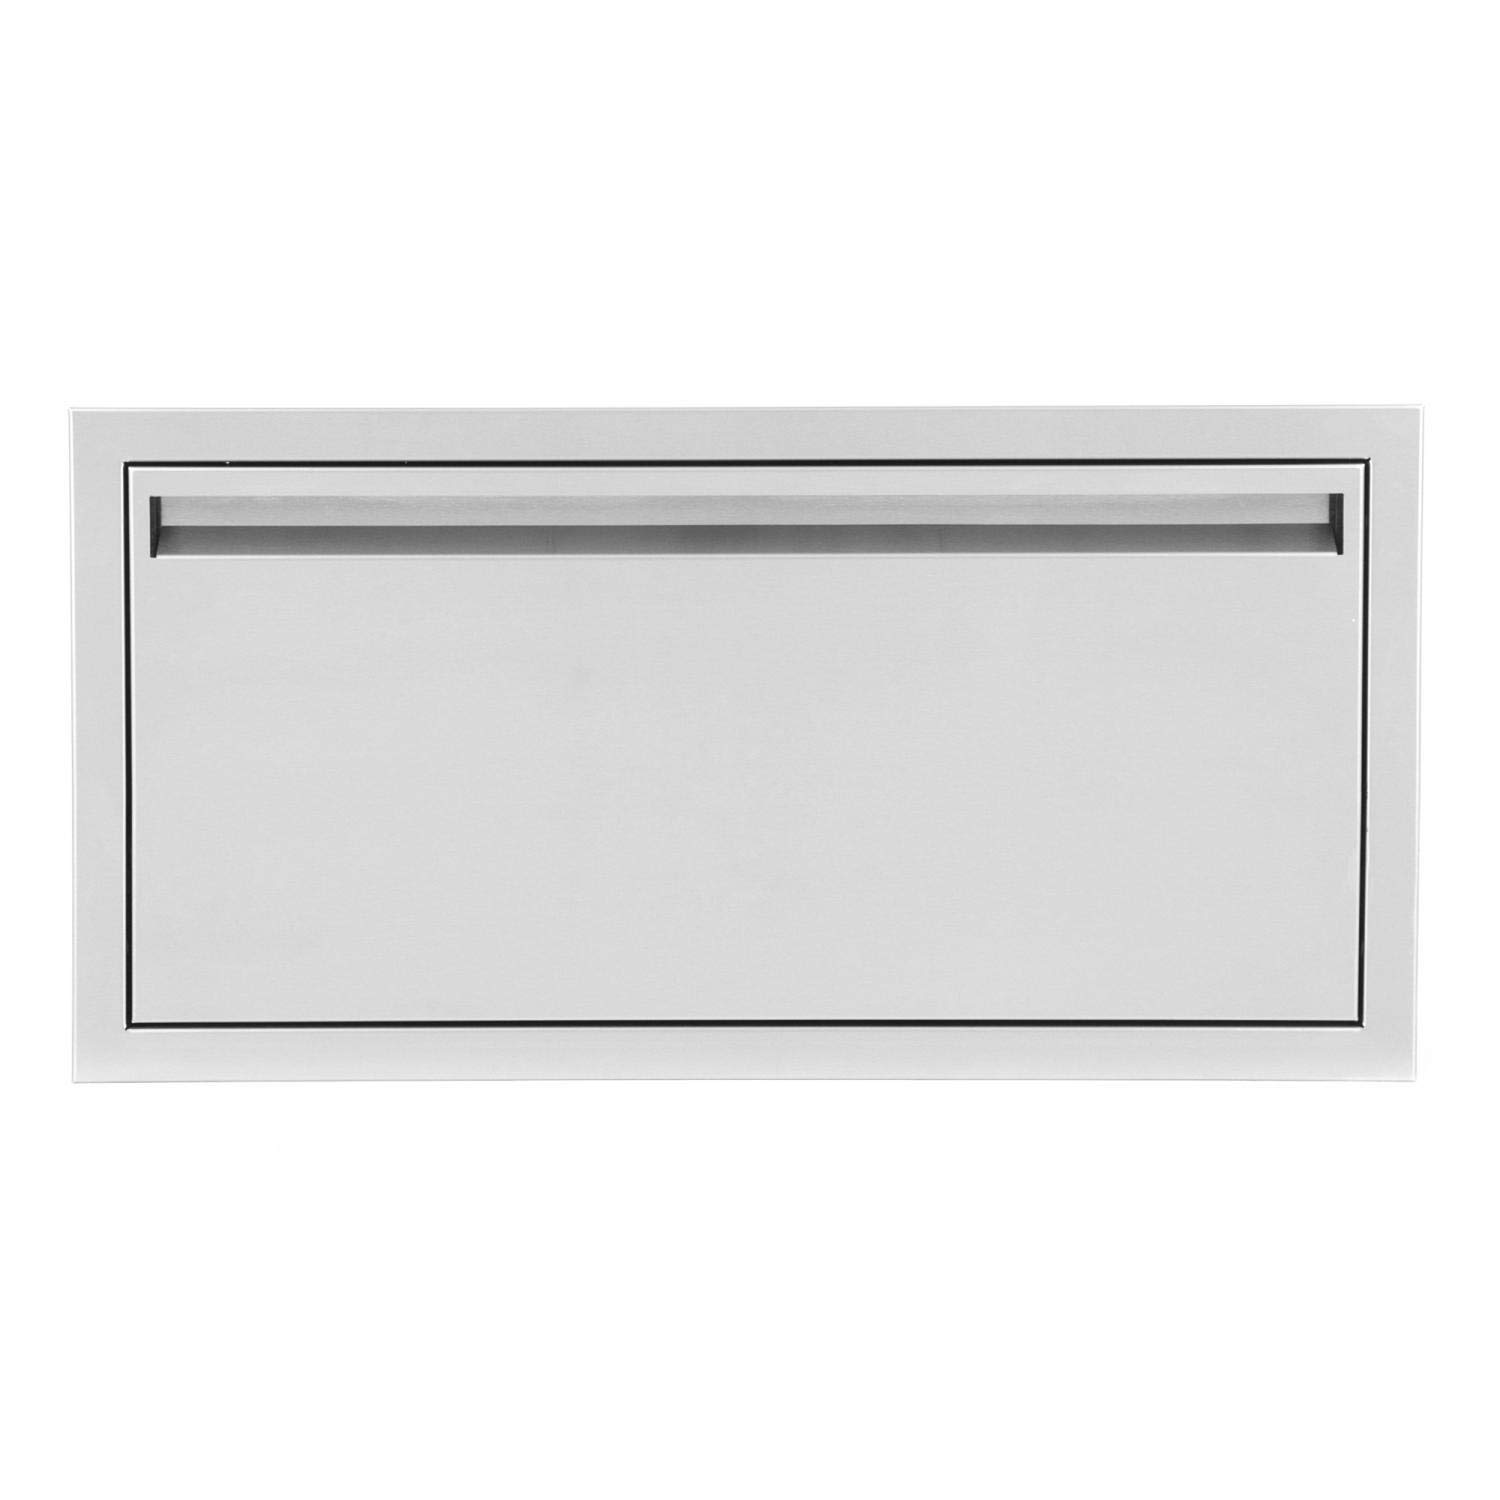 BBQGUYS Aspen Series 30 X 15-Inch Stainless Steel Single Access Drawer